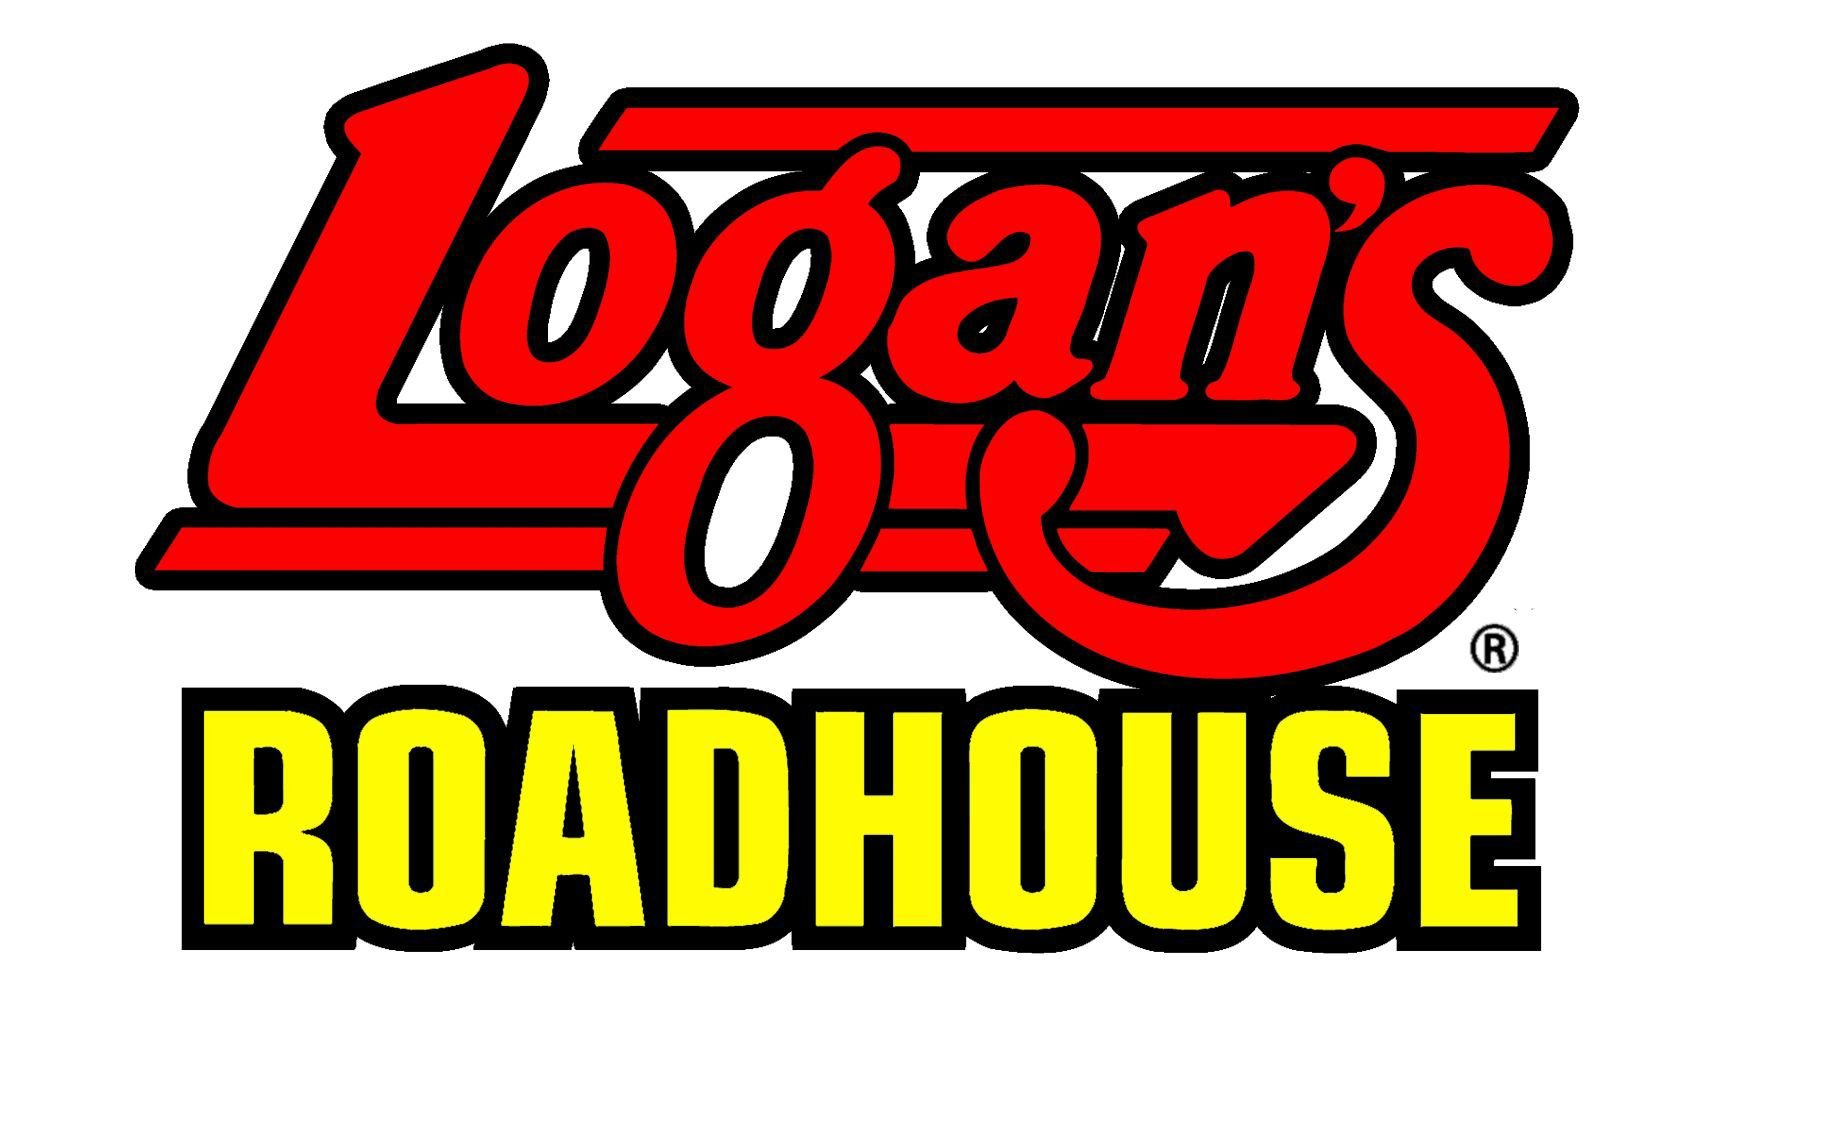 Nashville-based Logan's Roadhouse restaurant chain files for bankruptcy